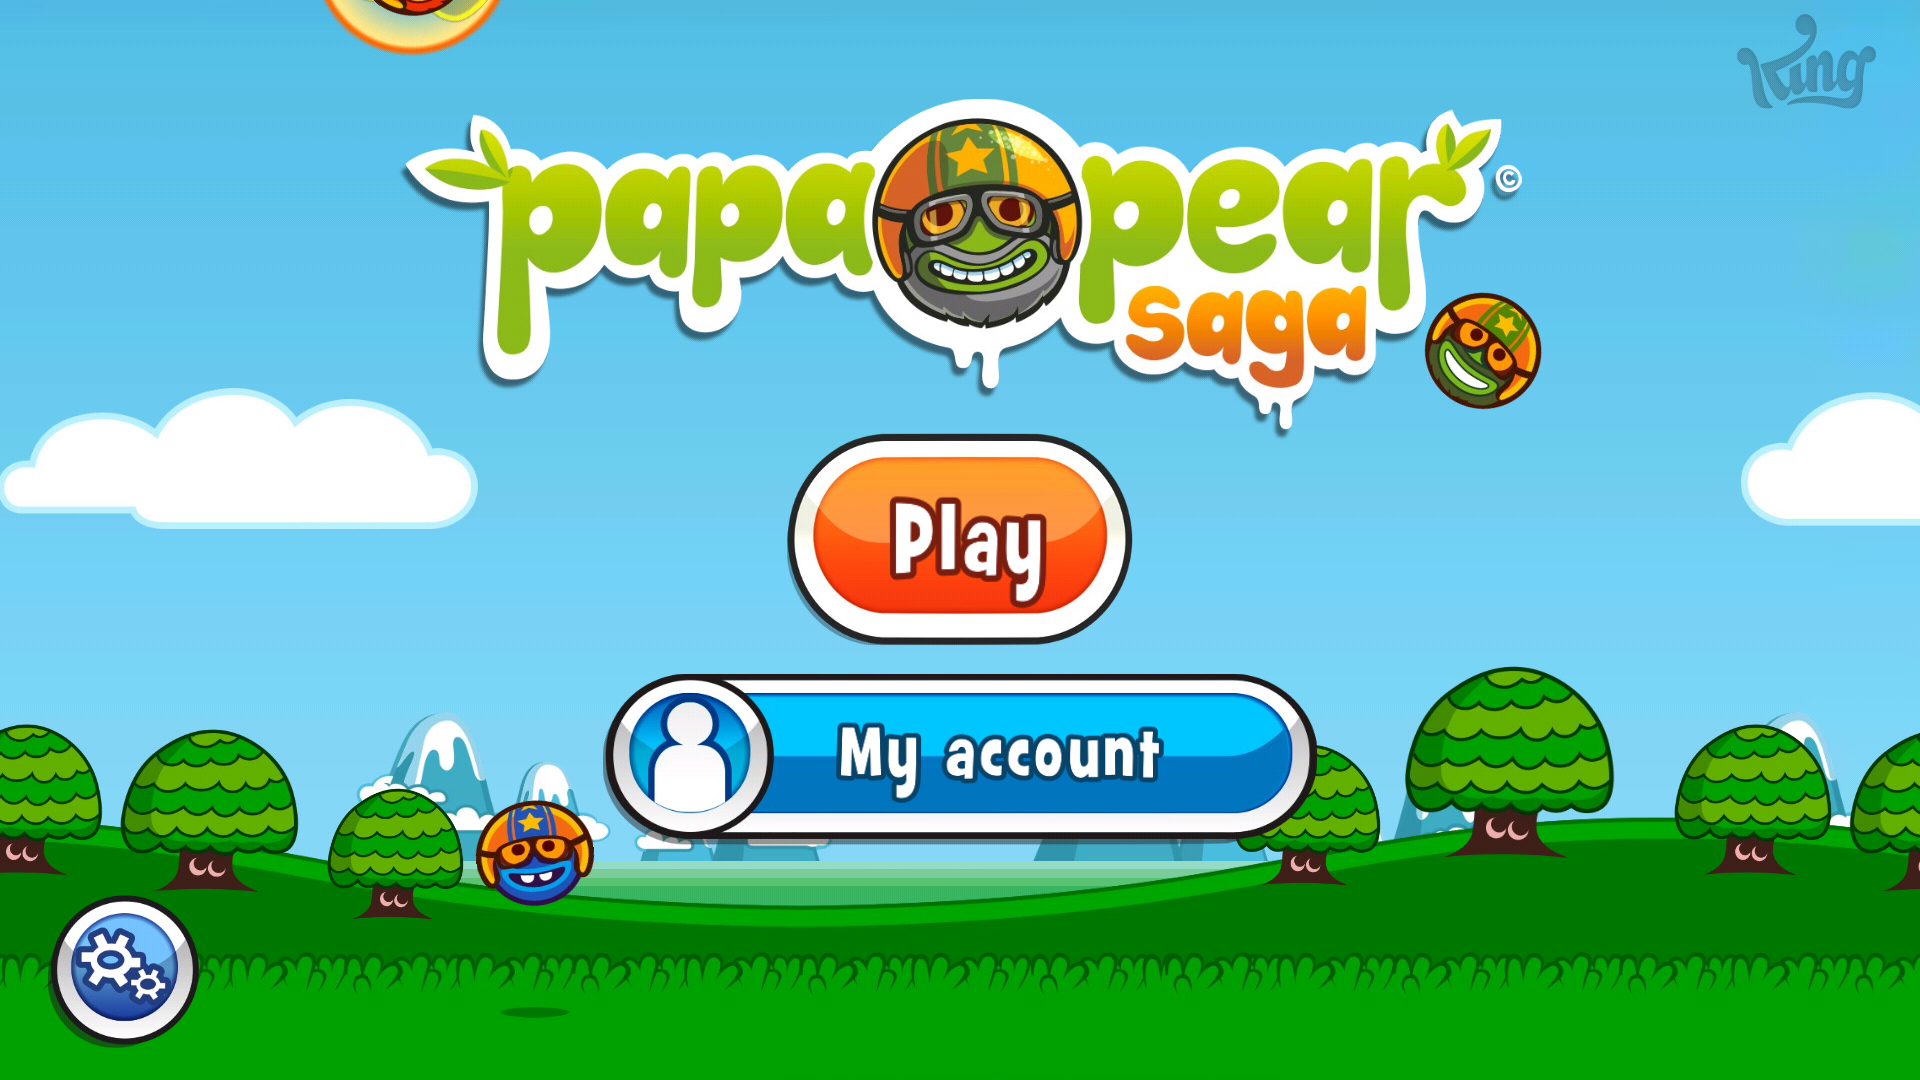 ministorm04: Papa Pear Saga: Level 002 (Android) 24,180 points on 2019-05-31 12:43:42